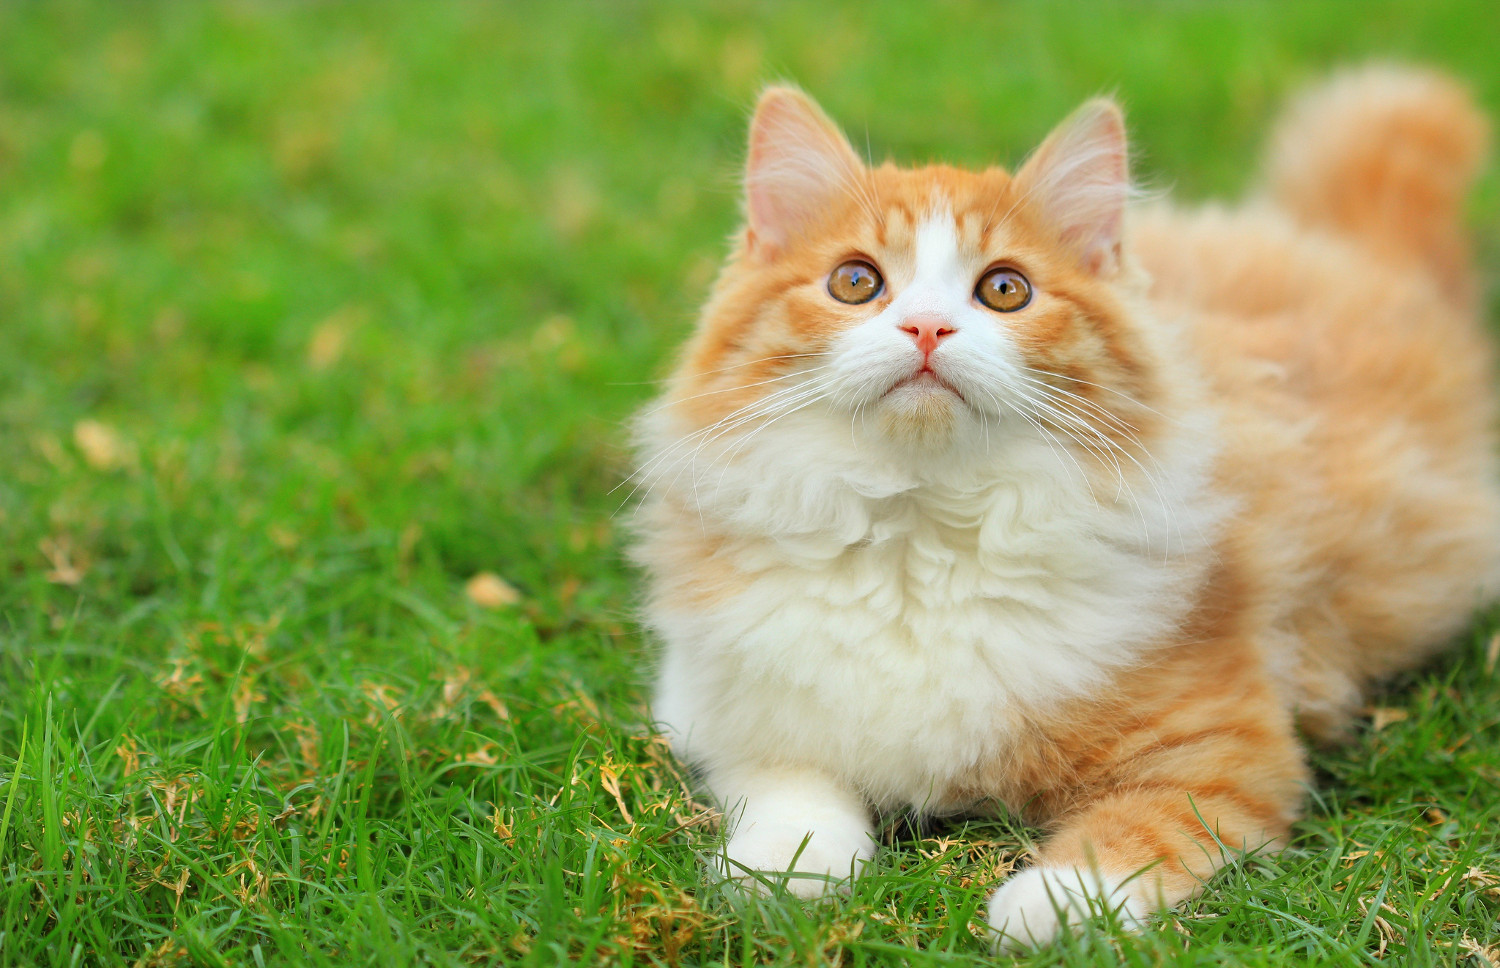 Fluffy Cute Cat on Grass Animal Screensaver